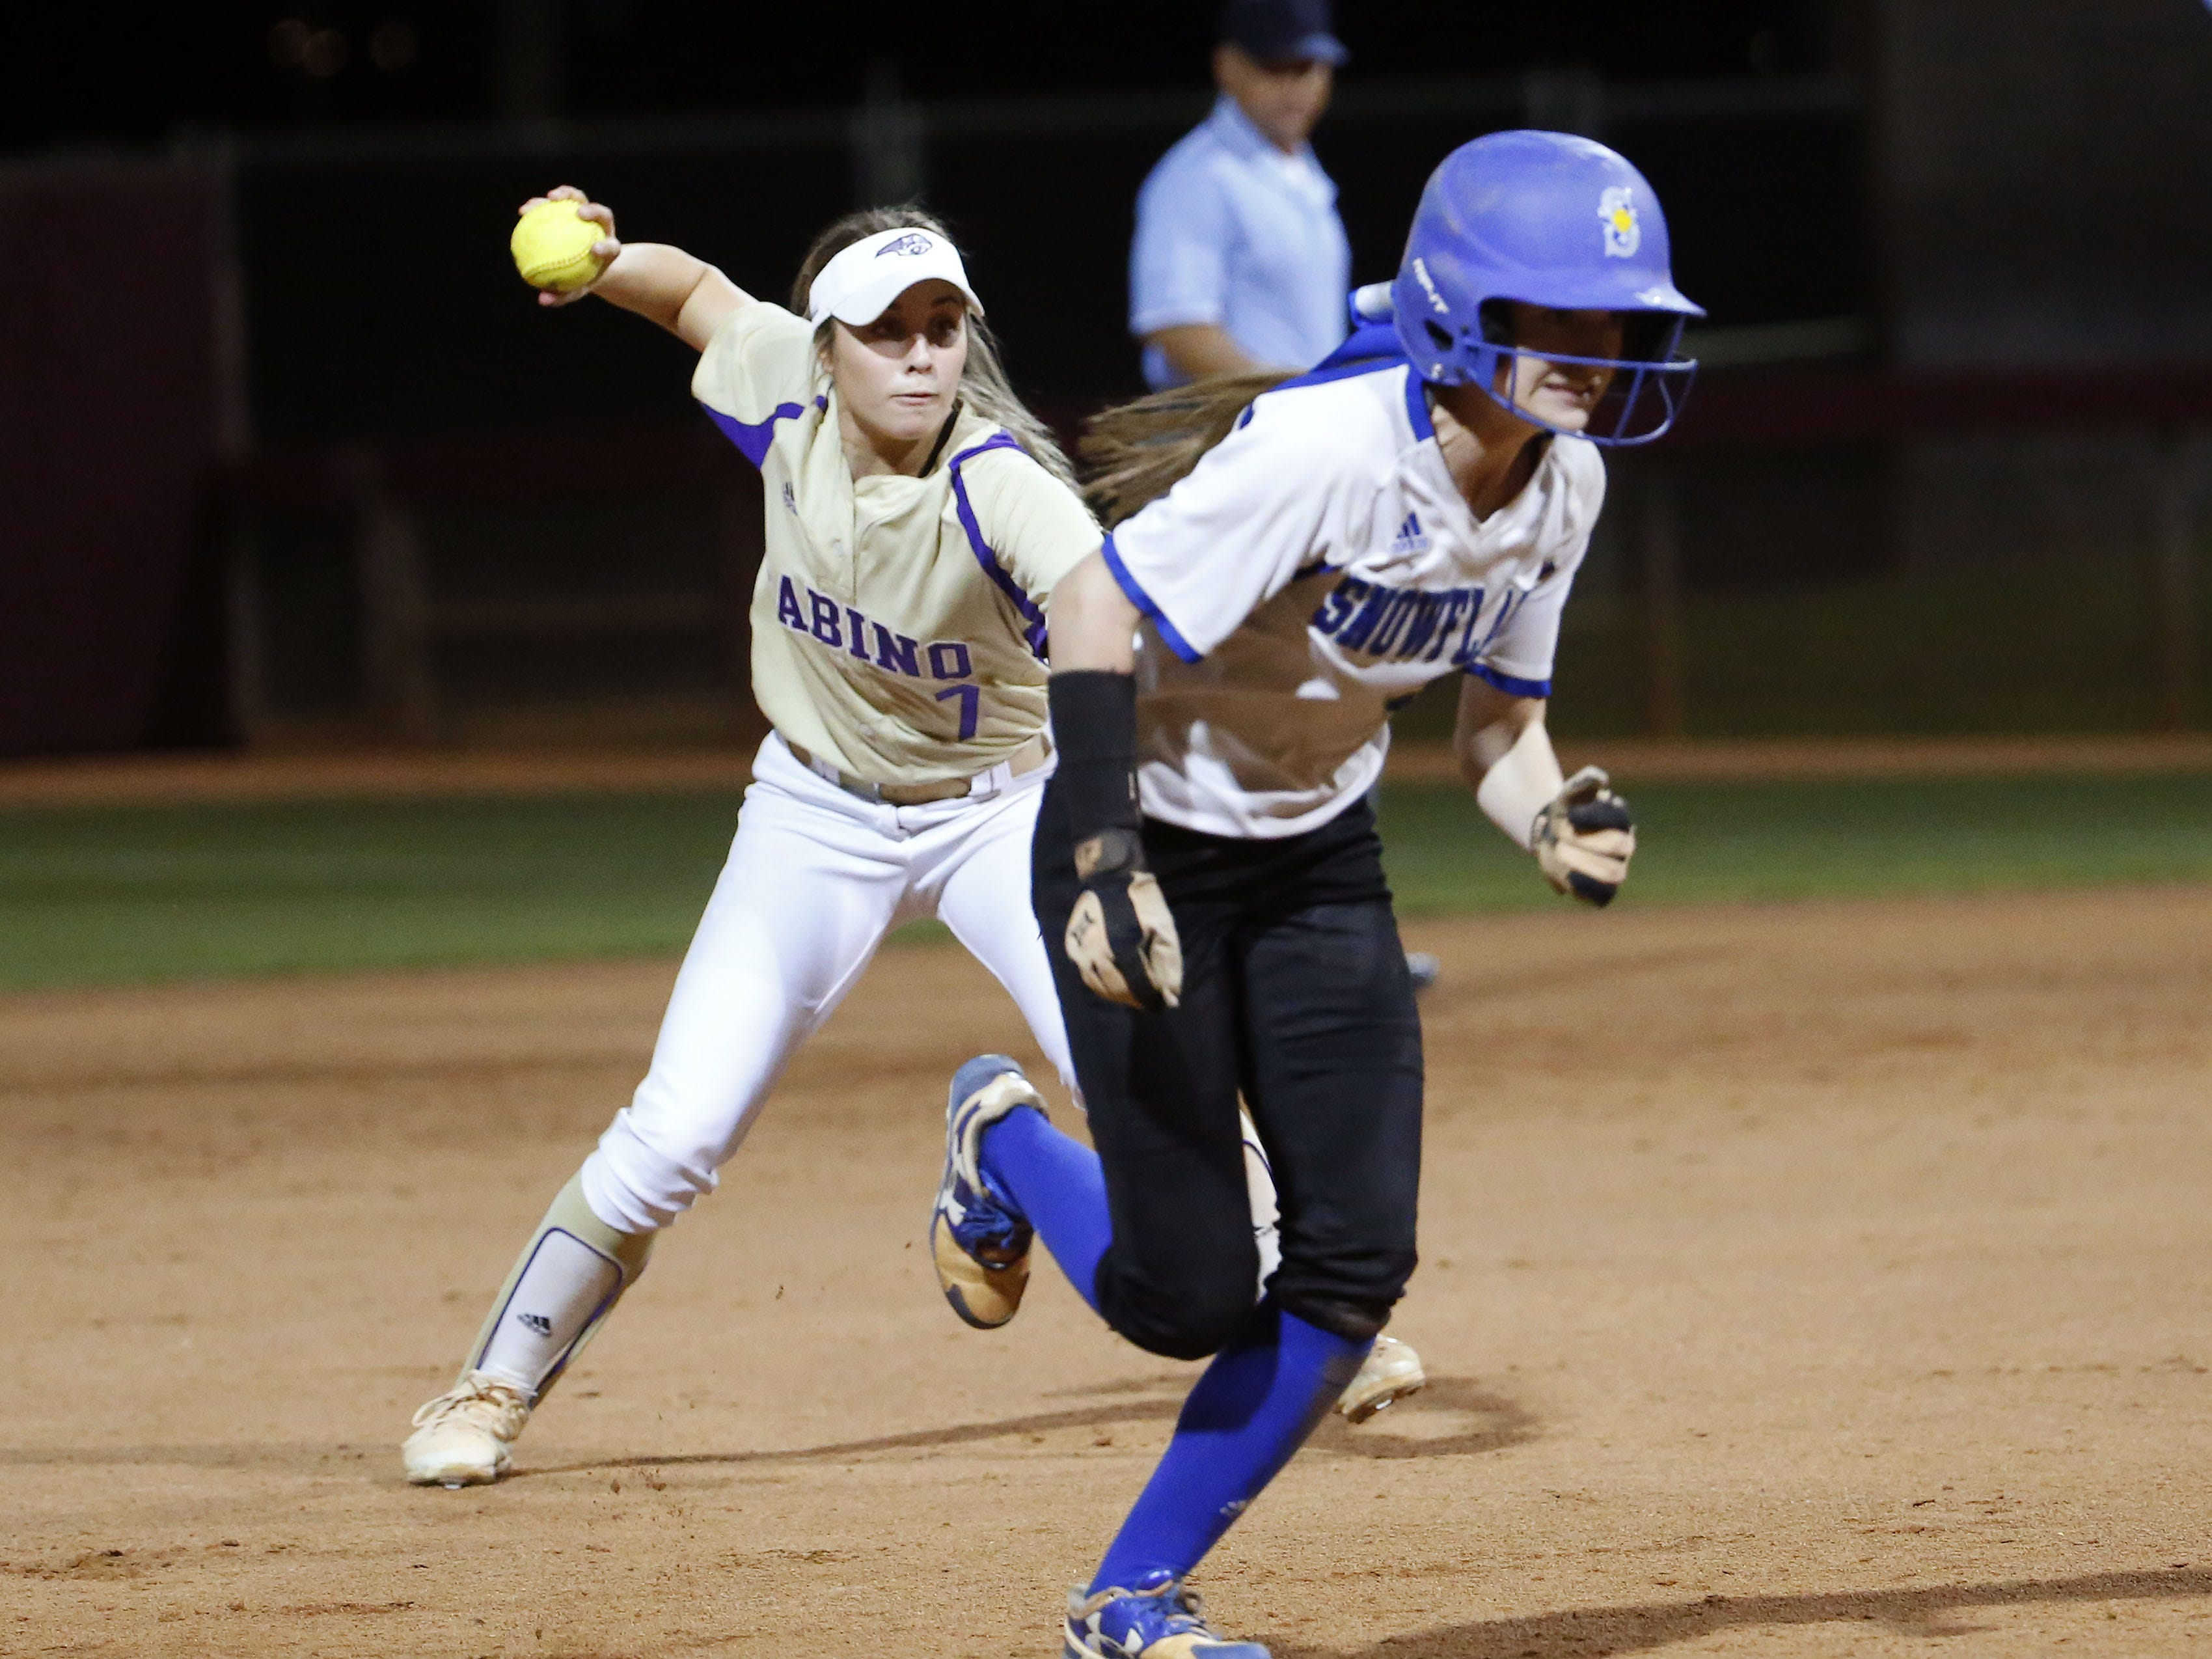 Sabino shortstop Sydney Gary (7) throws to third base as Snowflake center fielder Kaylee Thomas (8) advances safely during the 3A softball state championship game in Tempe May 6, 2019.